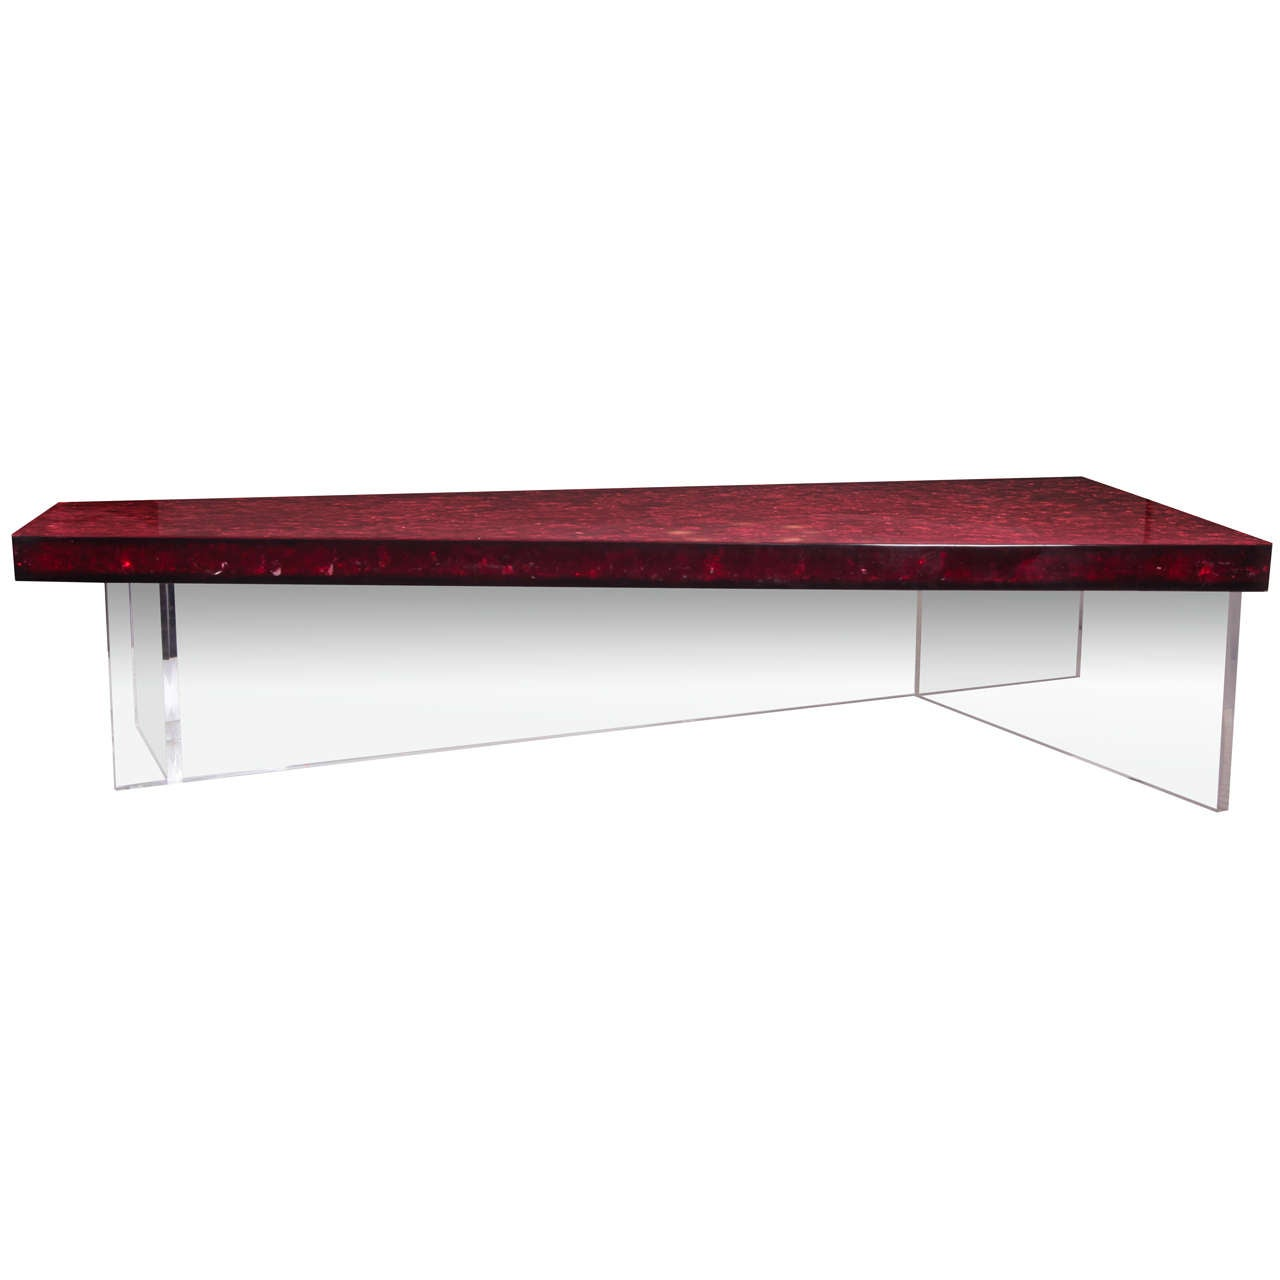 Marie Claude De Fouqui Res Red Fractal Resin Coffee Table At 1stdibs